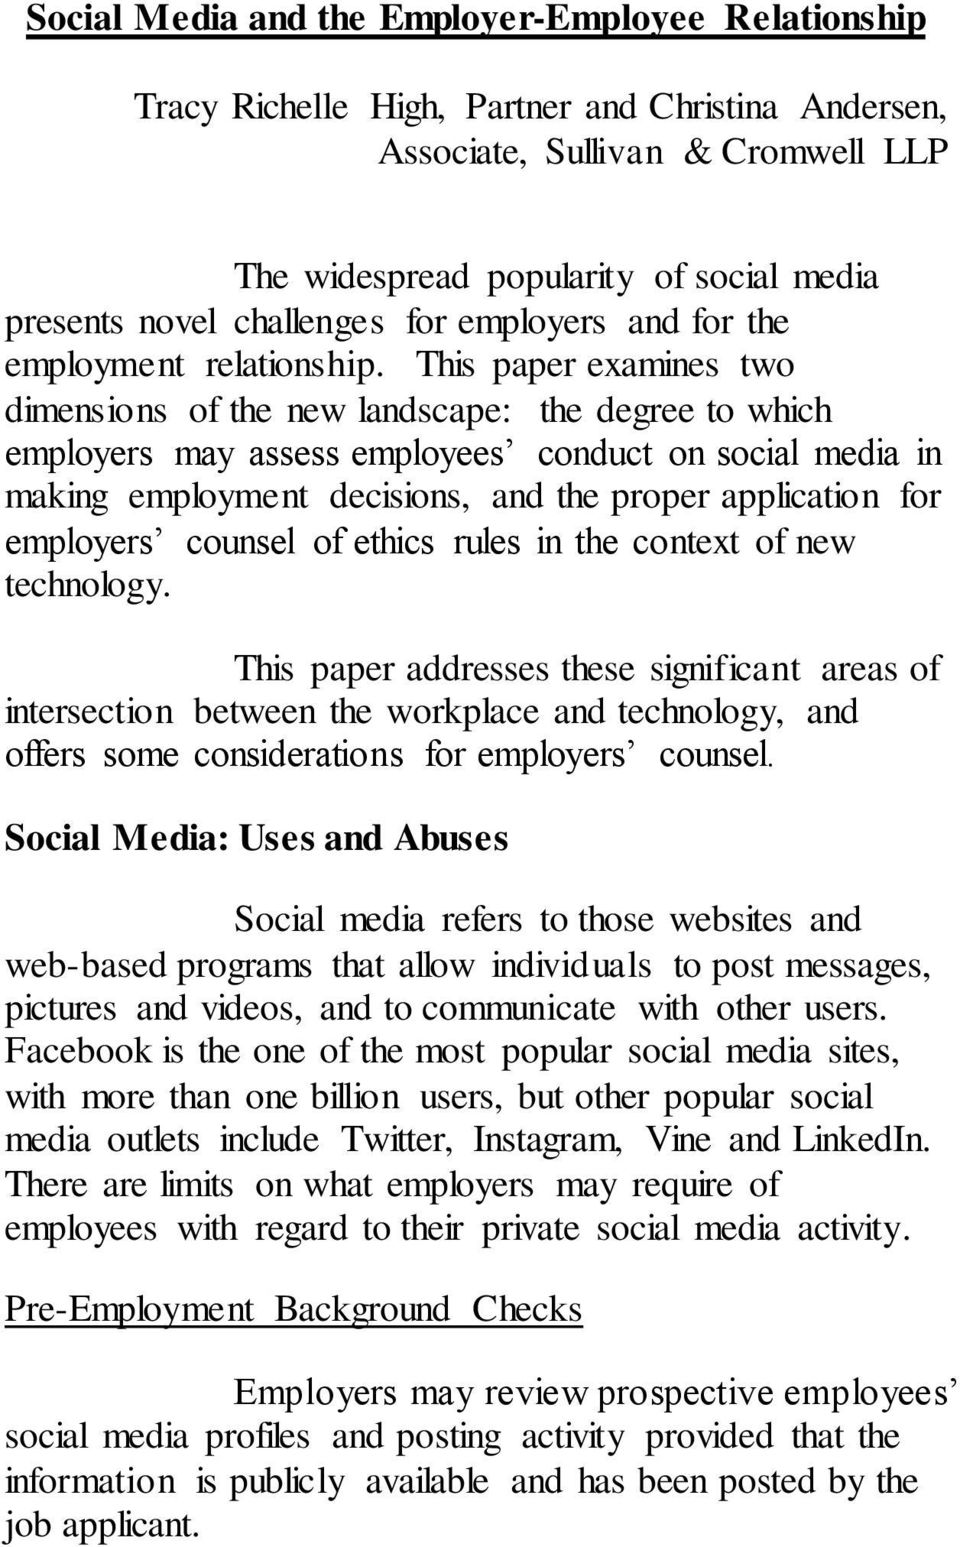 This paper examines two dimensions of the new landscape: the degree to which employers may assess employees conduct on social media in making employment decisions, and the proper application for